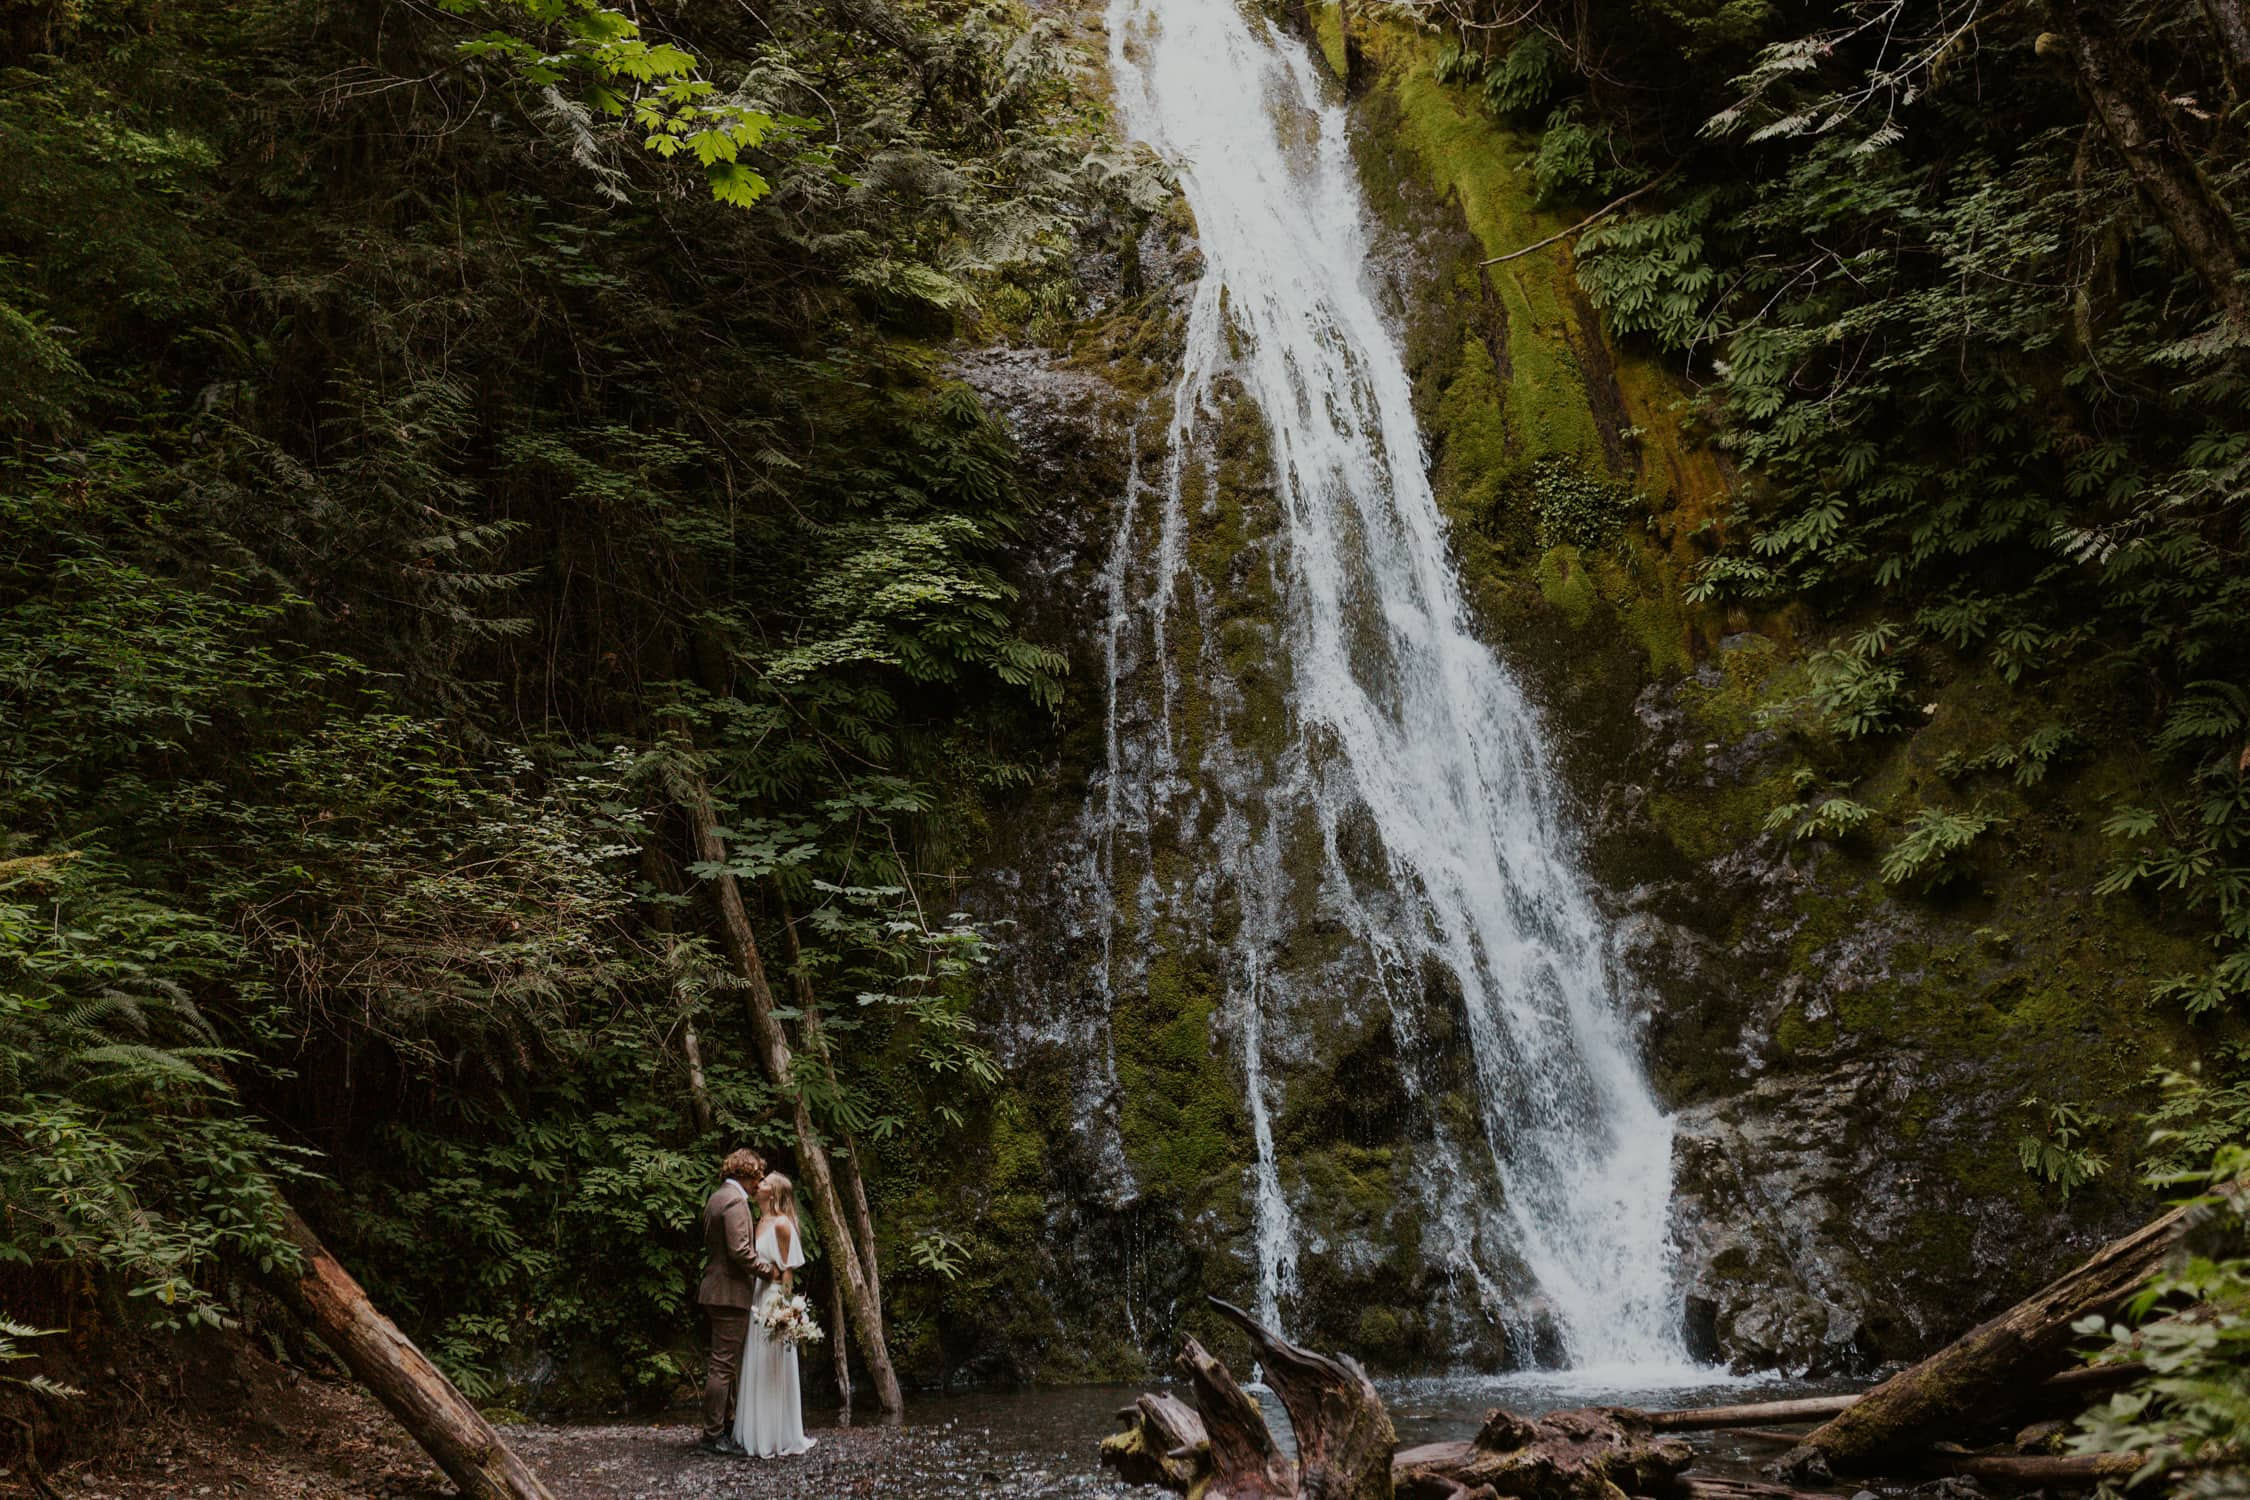 A bride and groom kissing on their elopement day next to a waterfall in Washington State.